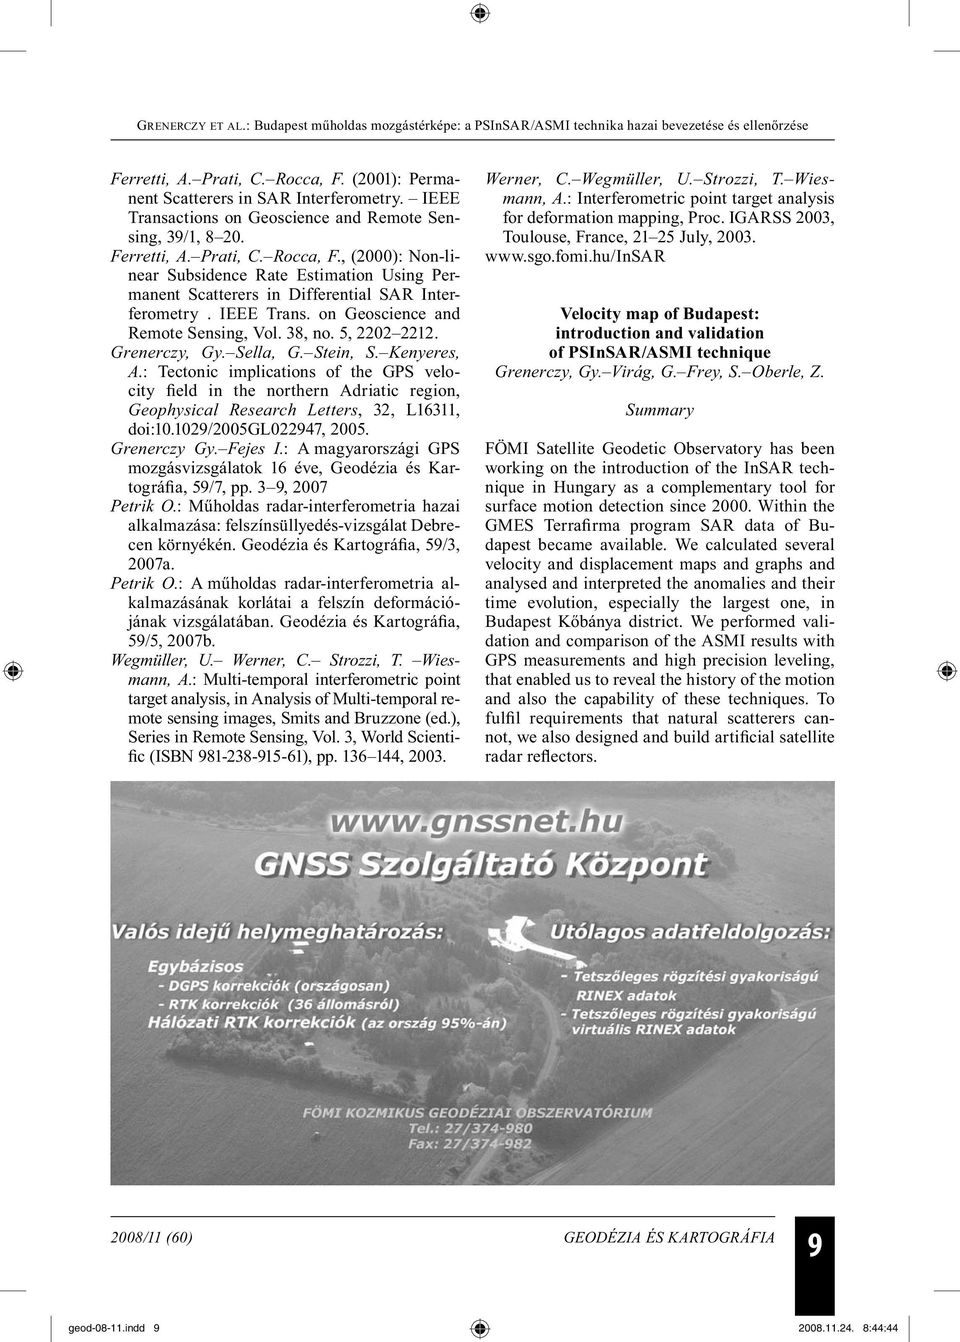 : Tectonic implications of the GPS velocity field in the northern Adriatic region, Geophysical Research Letters, 32, L16311, doi:10.1029/2005gl022947, 2005. Grenerczy Gy. Fejes I.